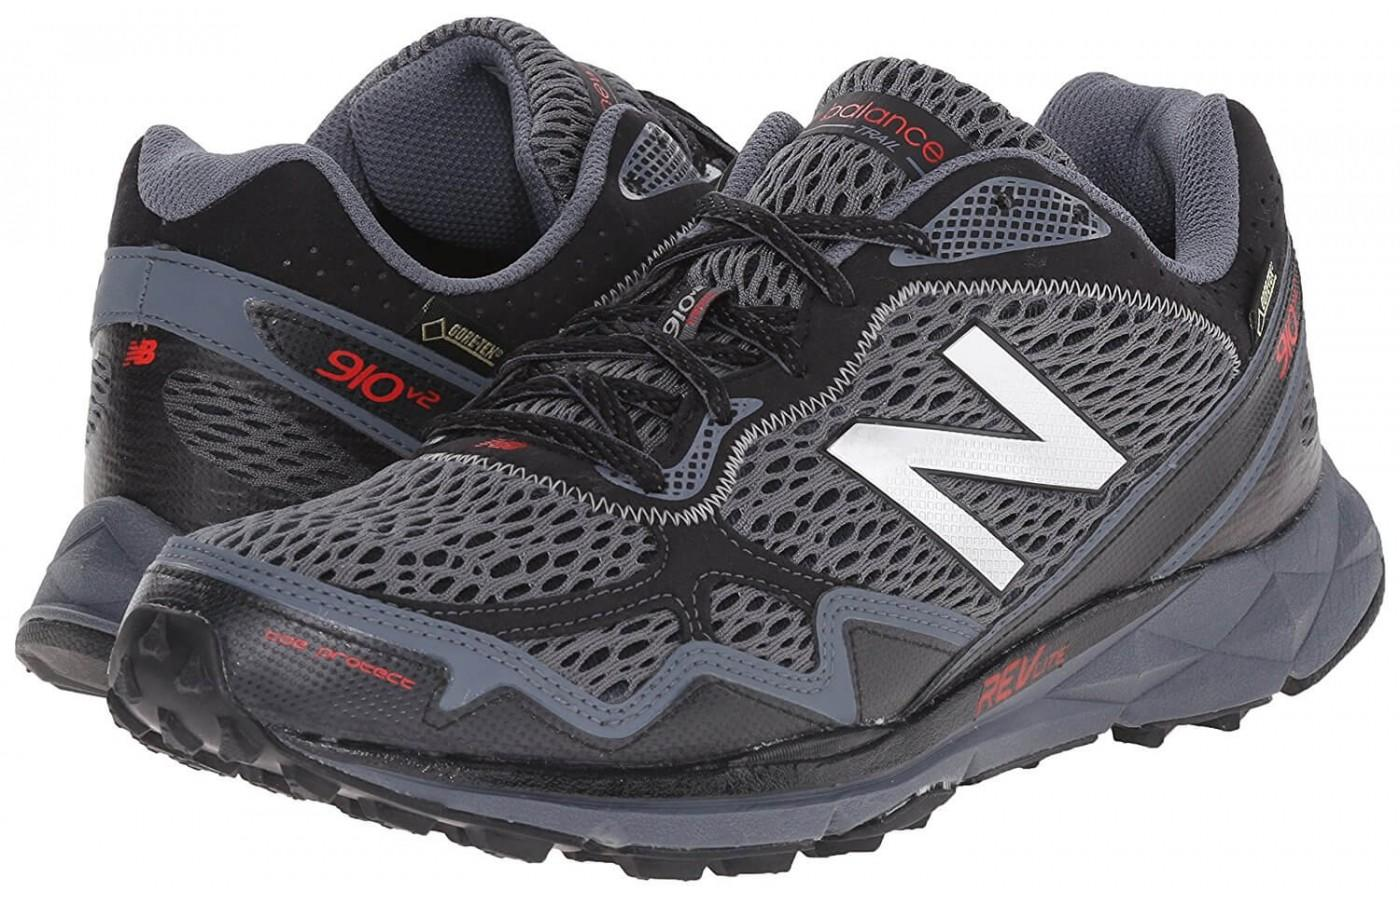 designer fashion 745c9 78bce The New Balance 910v2 is reasonably priced